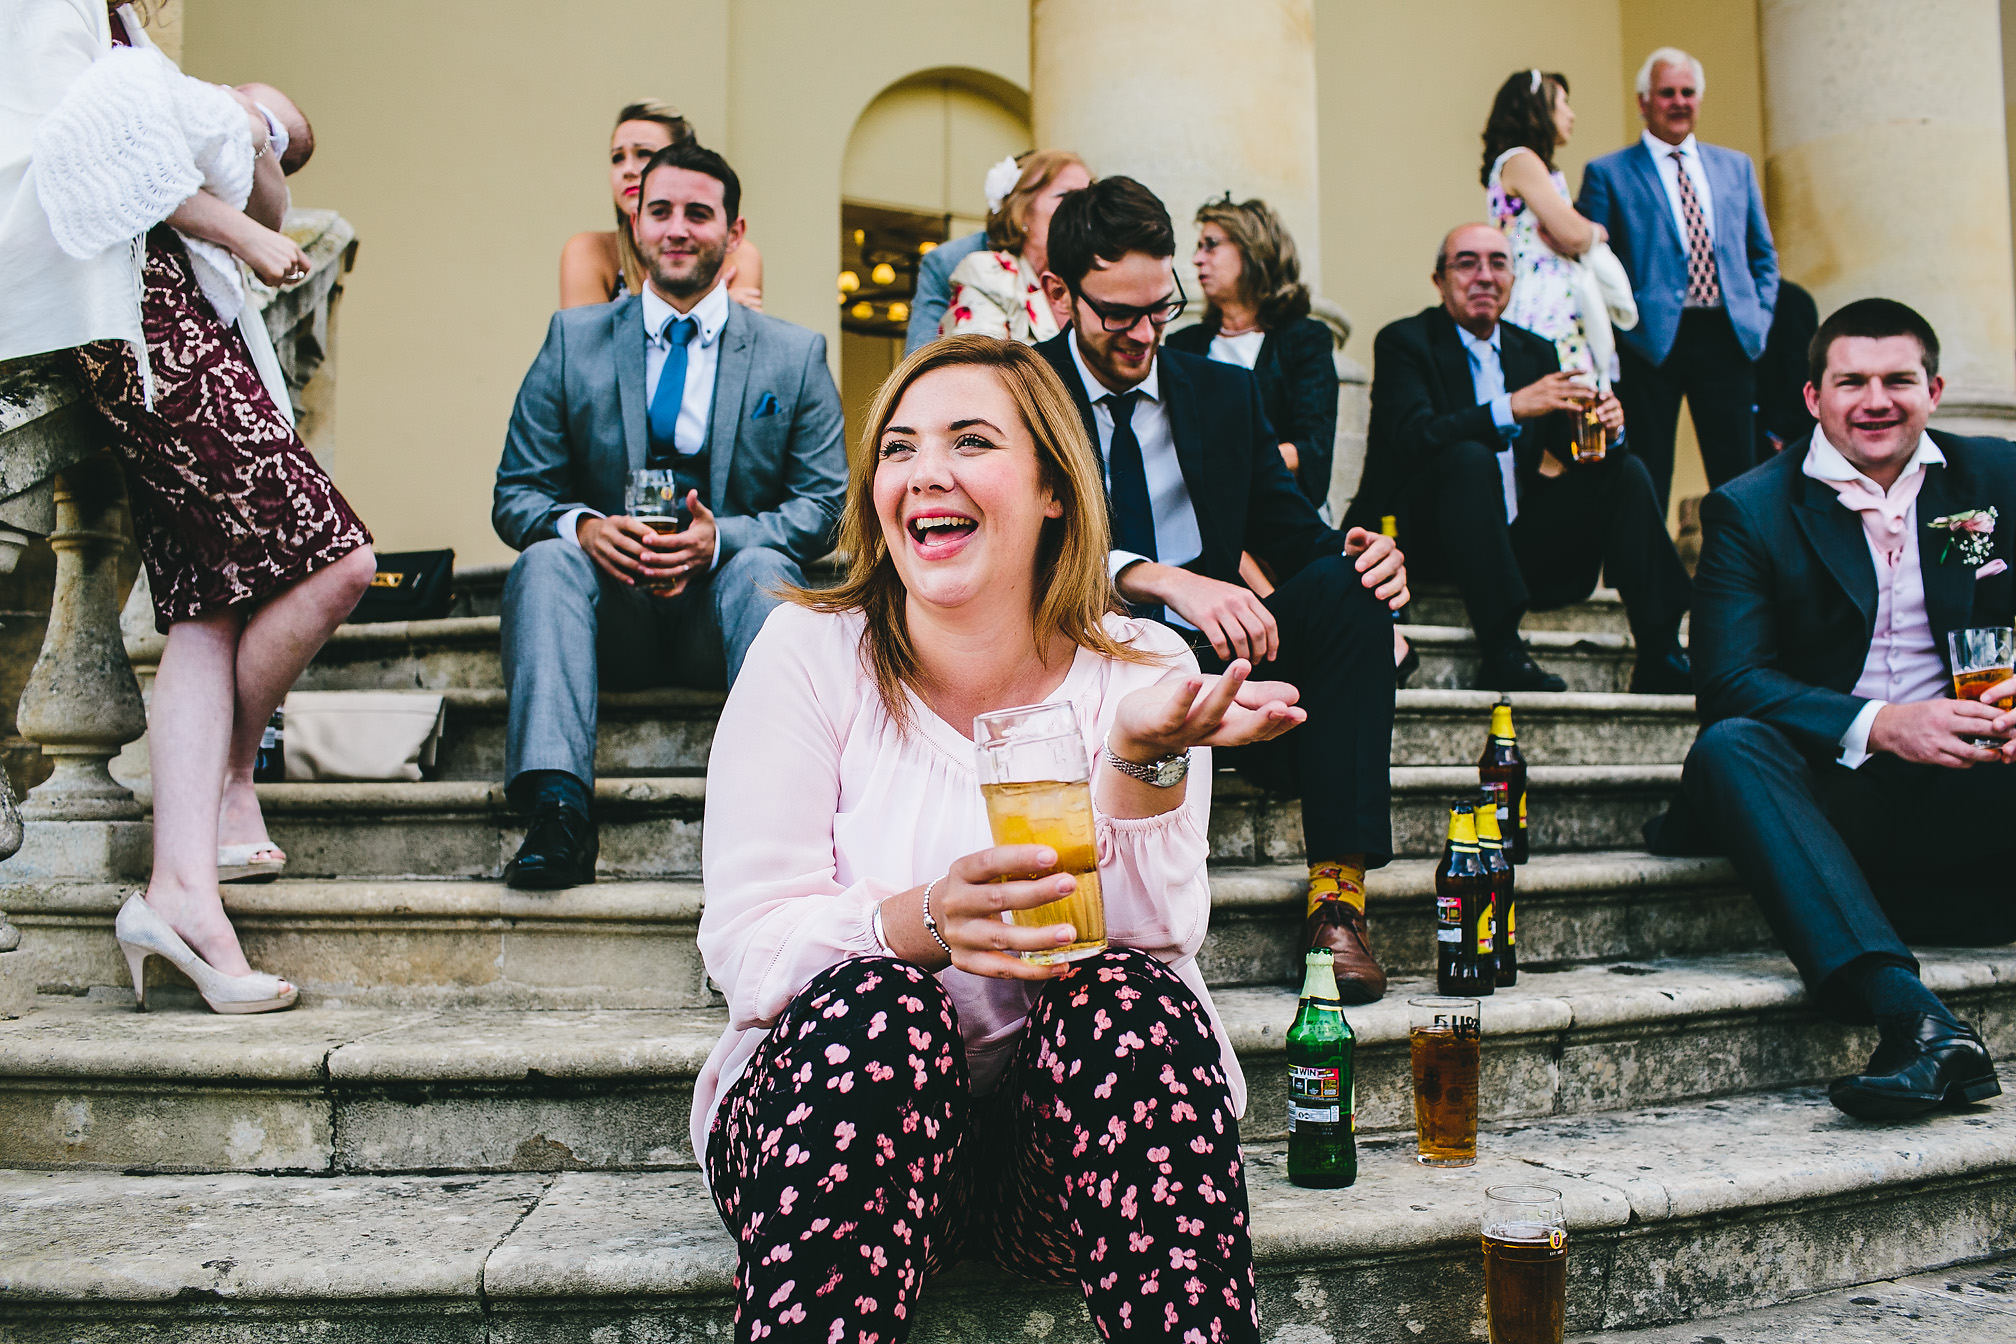 Wedding guest drinking beer